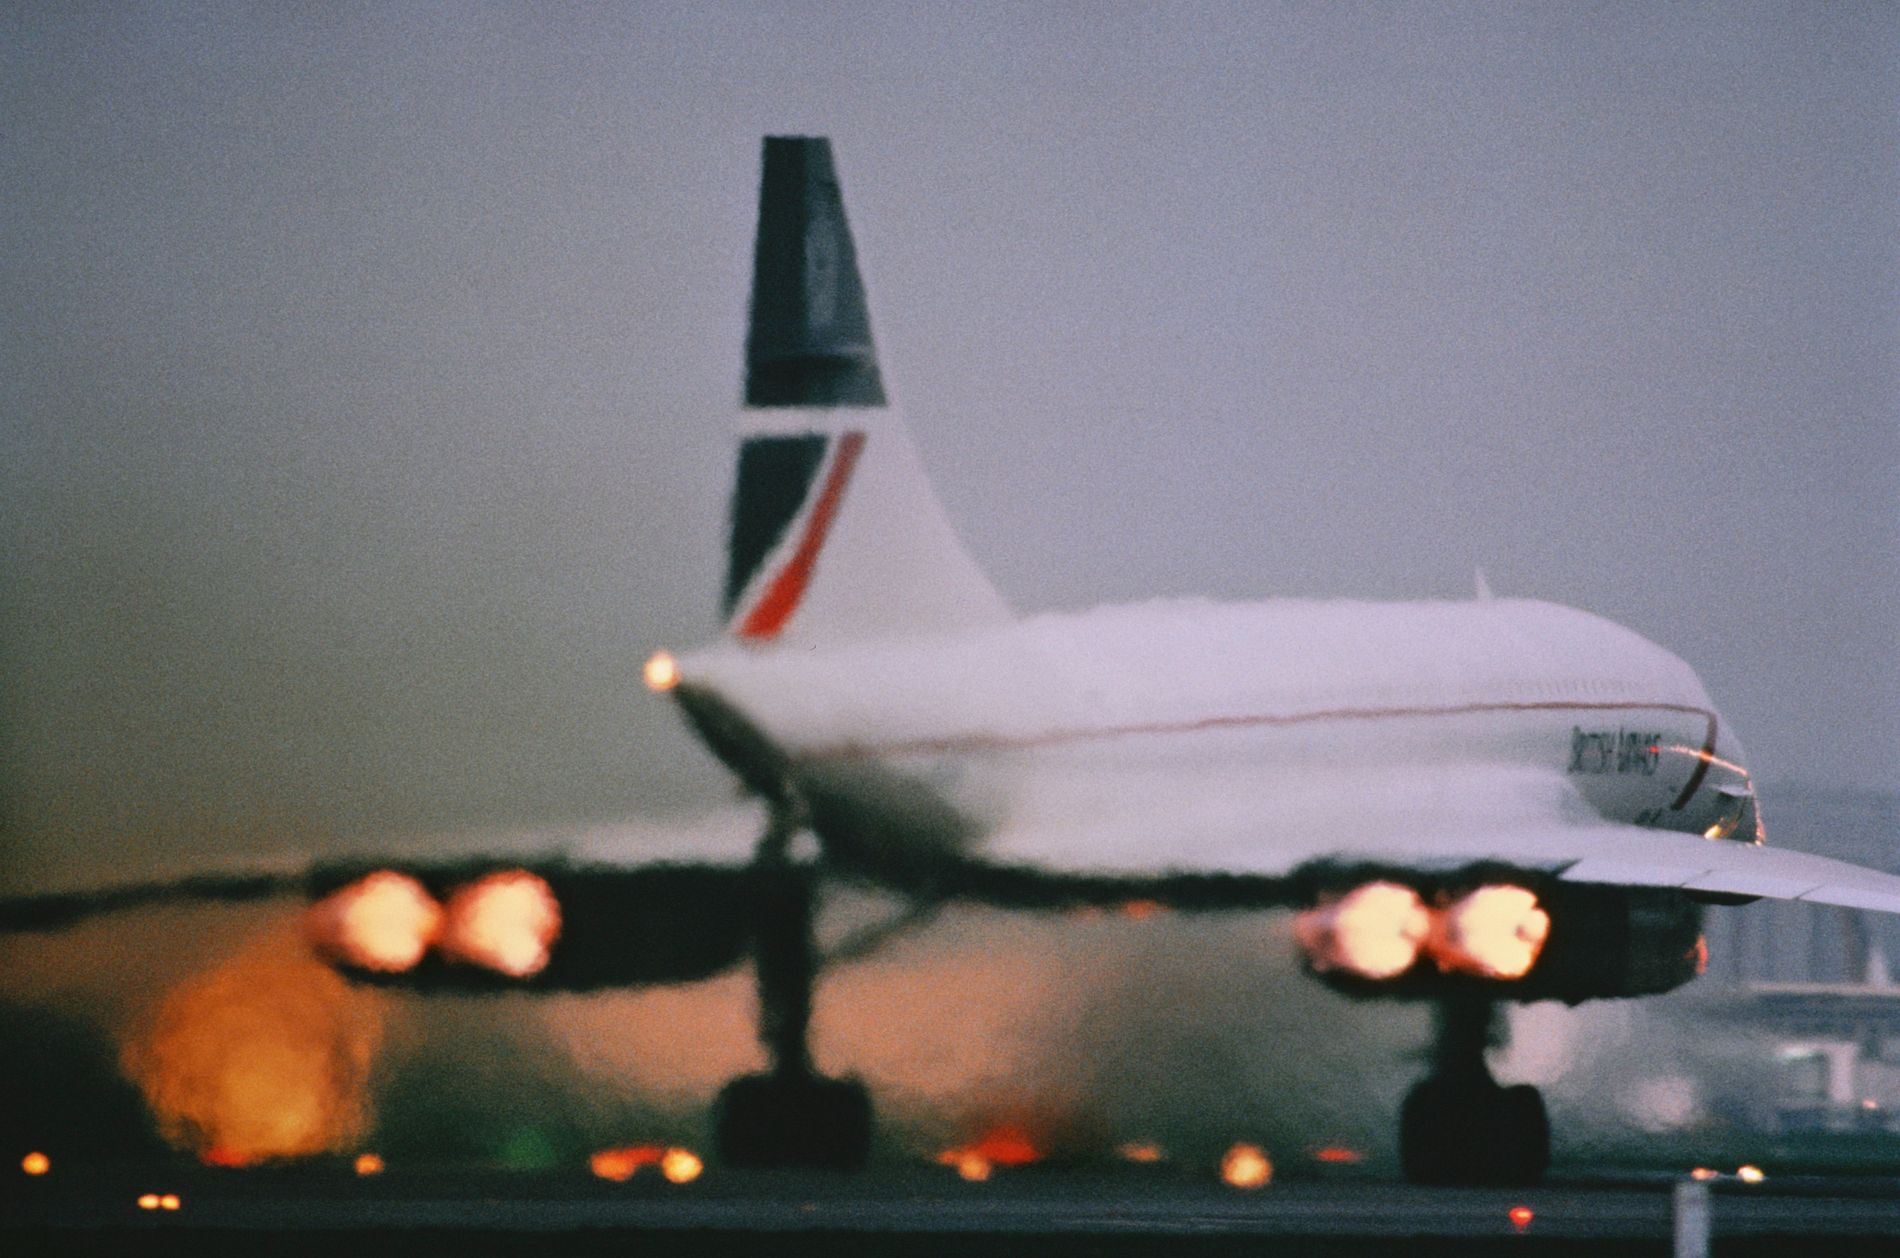 Afterburners were essential for getting Concorde through the sound barrier. The enormous consumption of fuel was ...